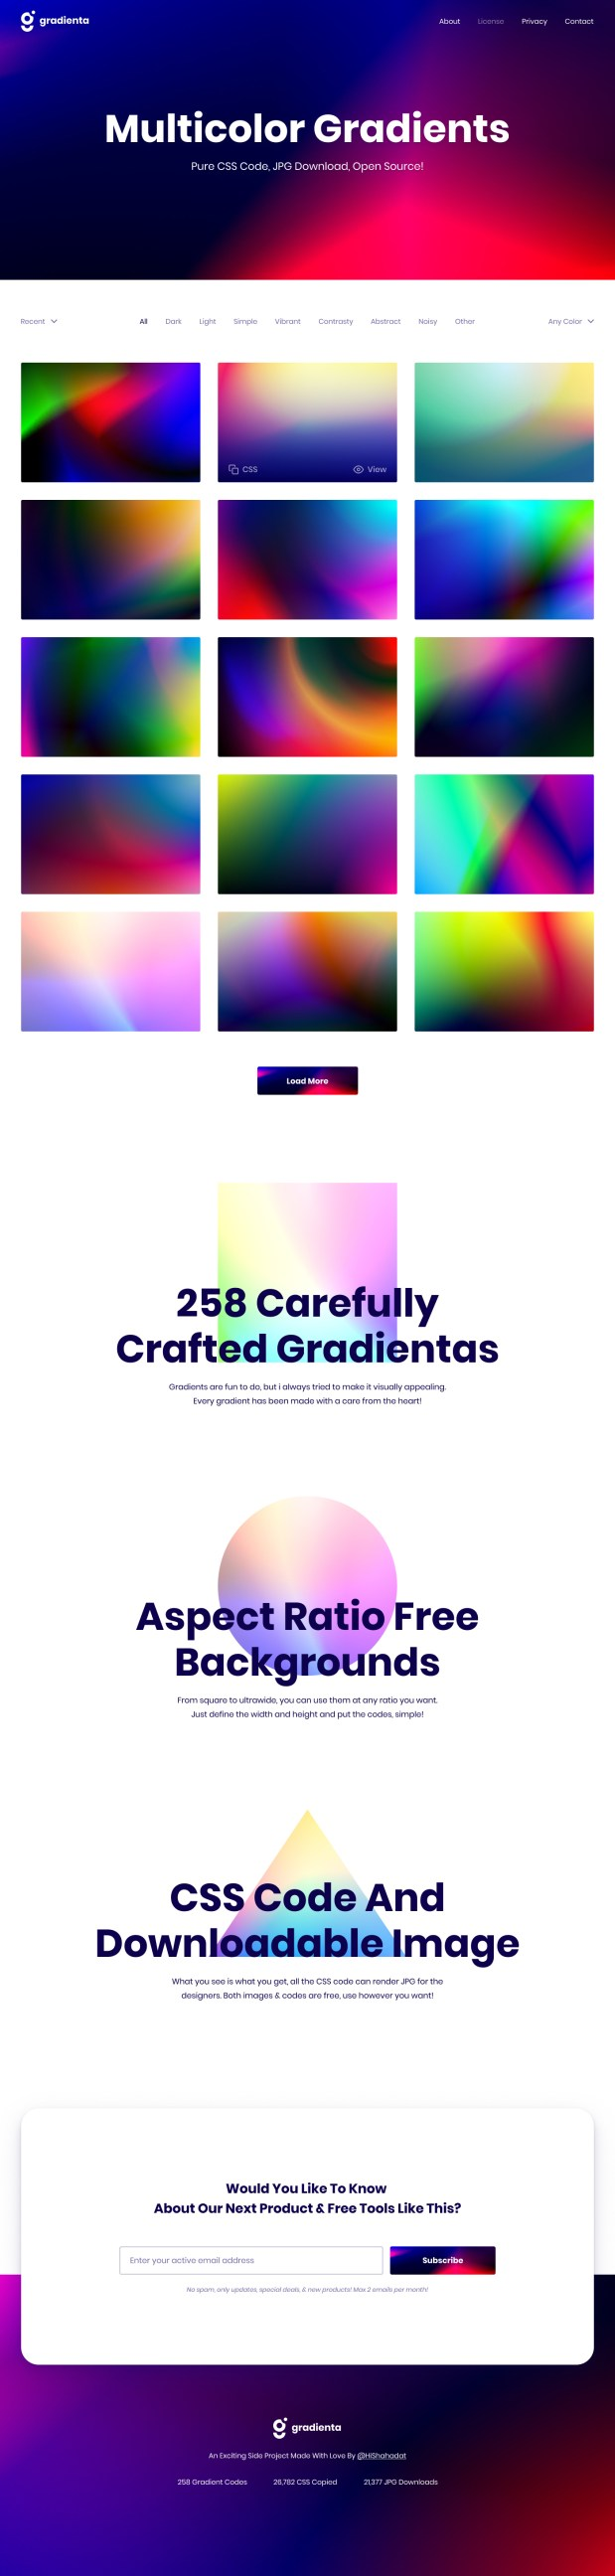 Gradienta - Free Multicolor CSS Gradients